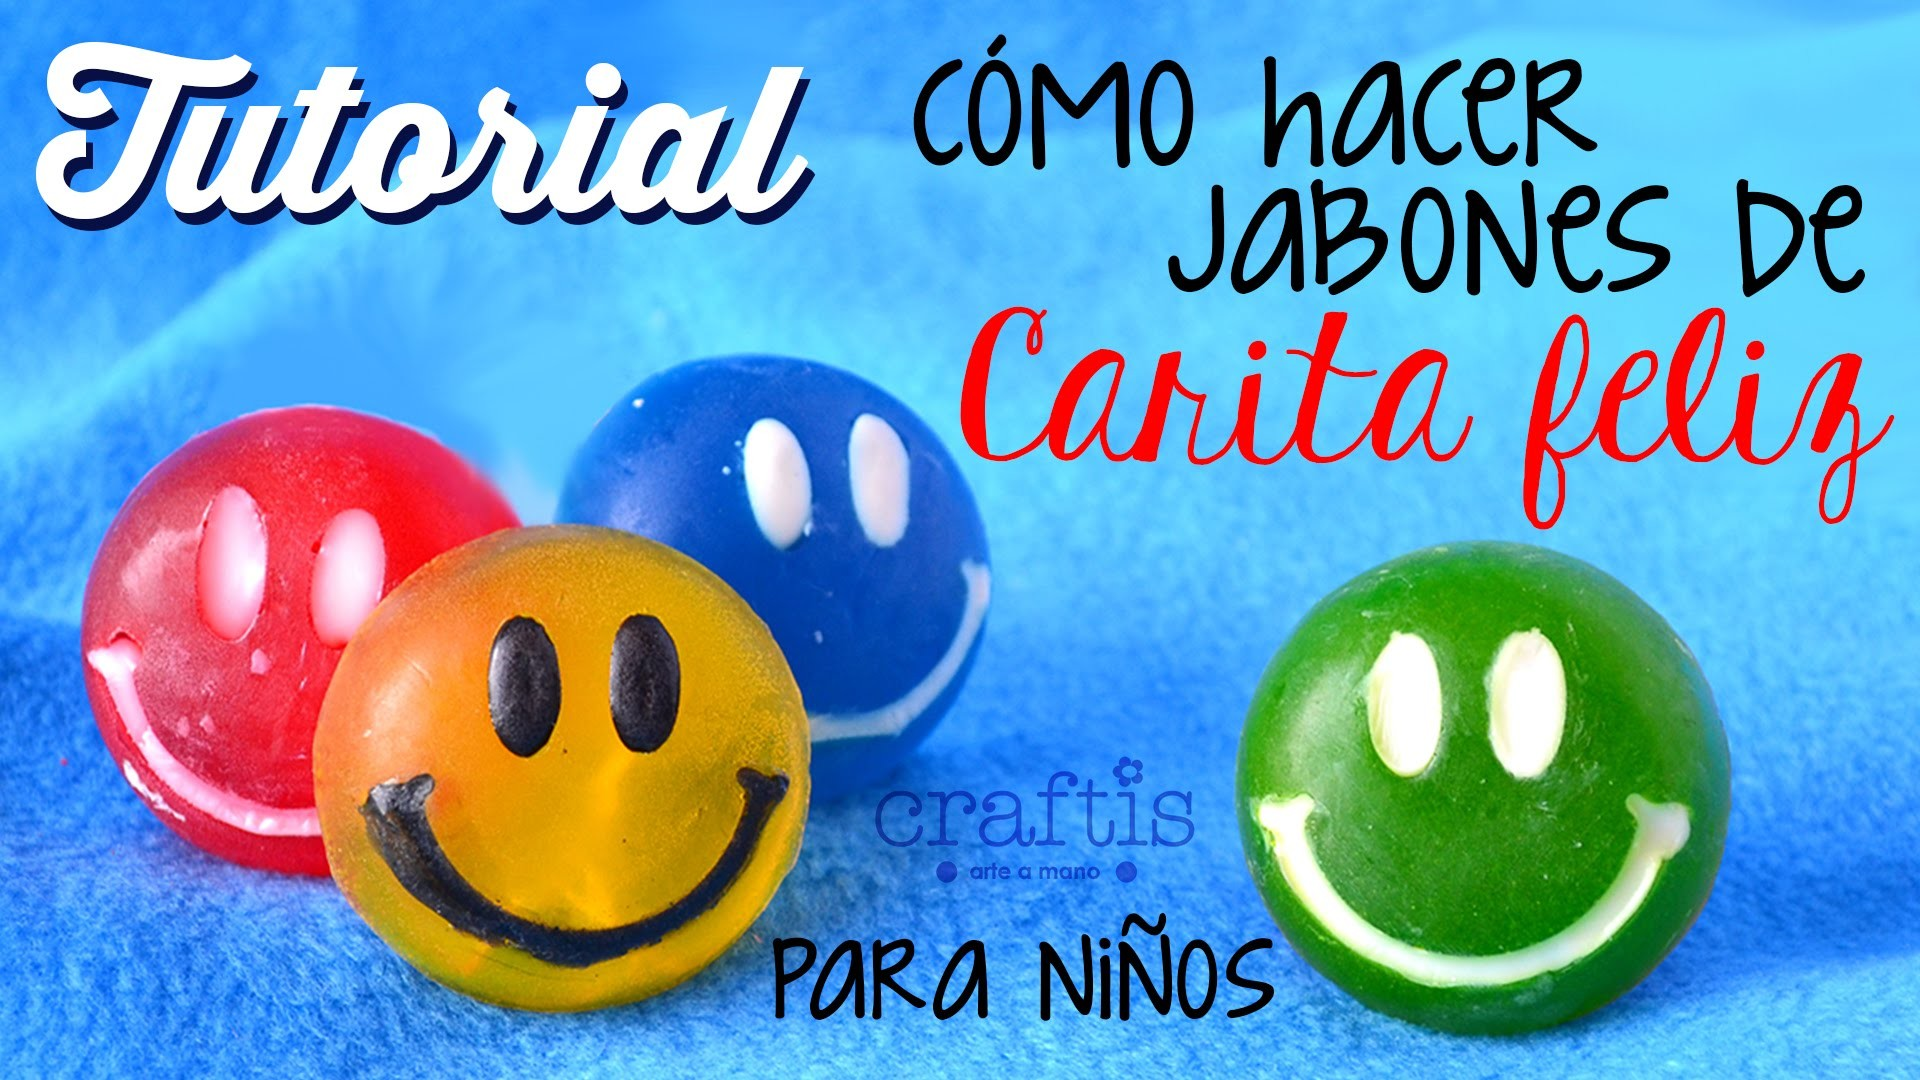 Tutorial: Cómo hacer jabones para niños Carita feliz FÁCIL | How to make happy face soaps for kids